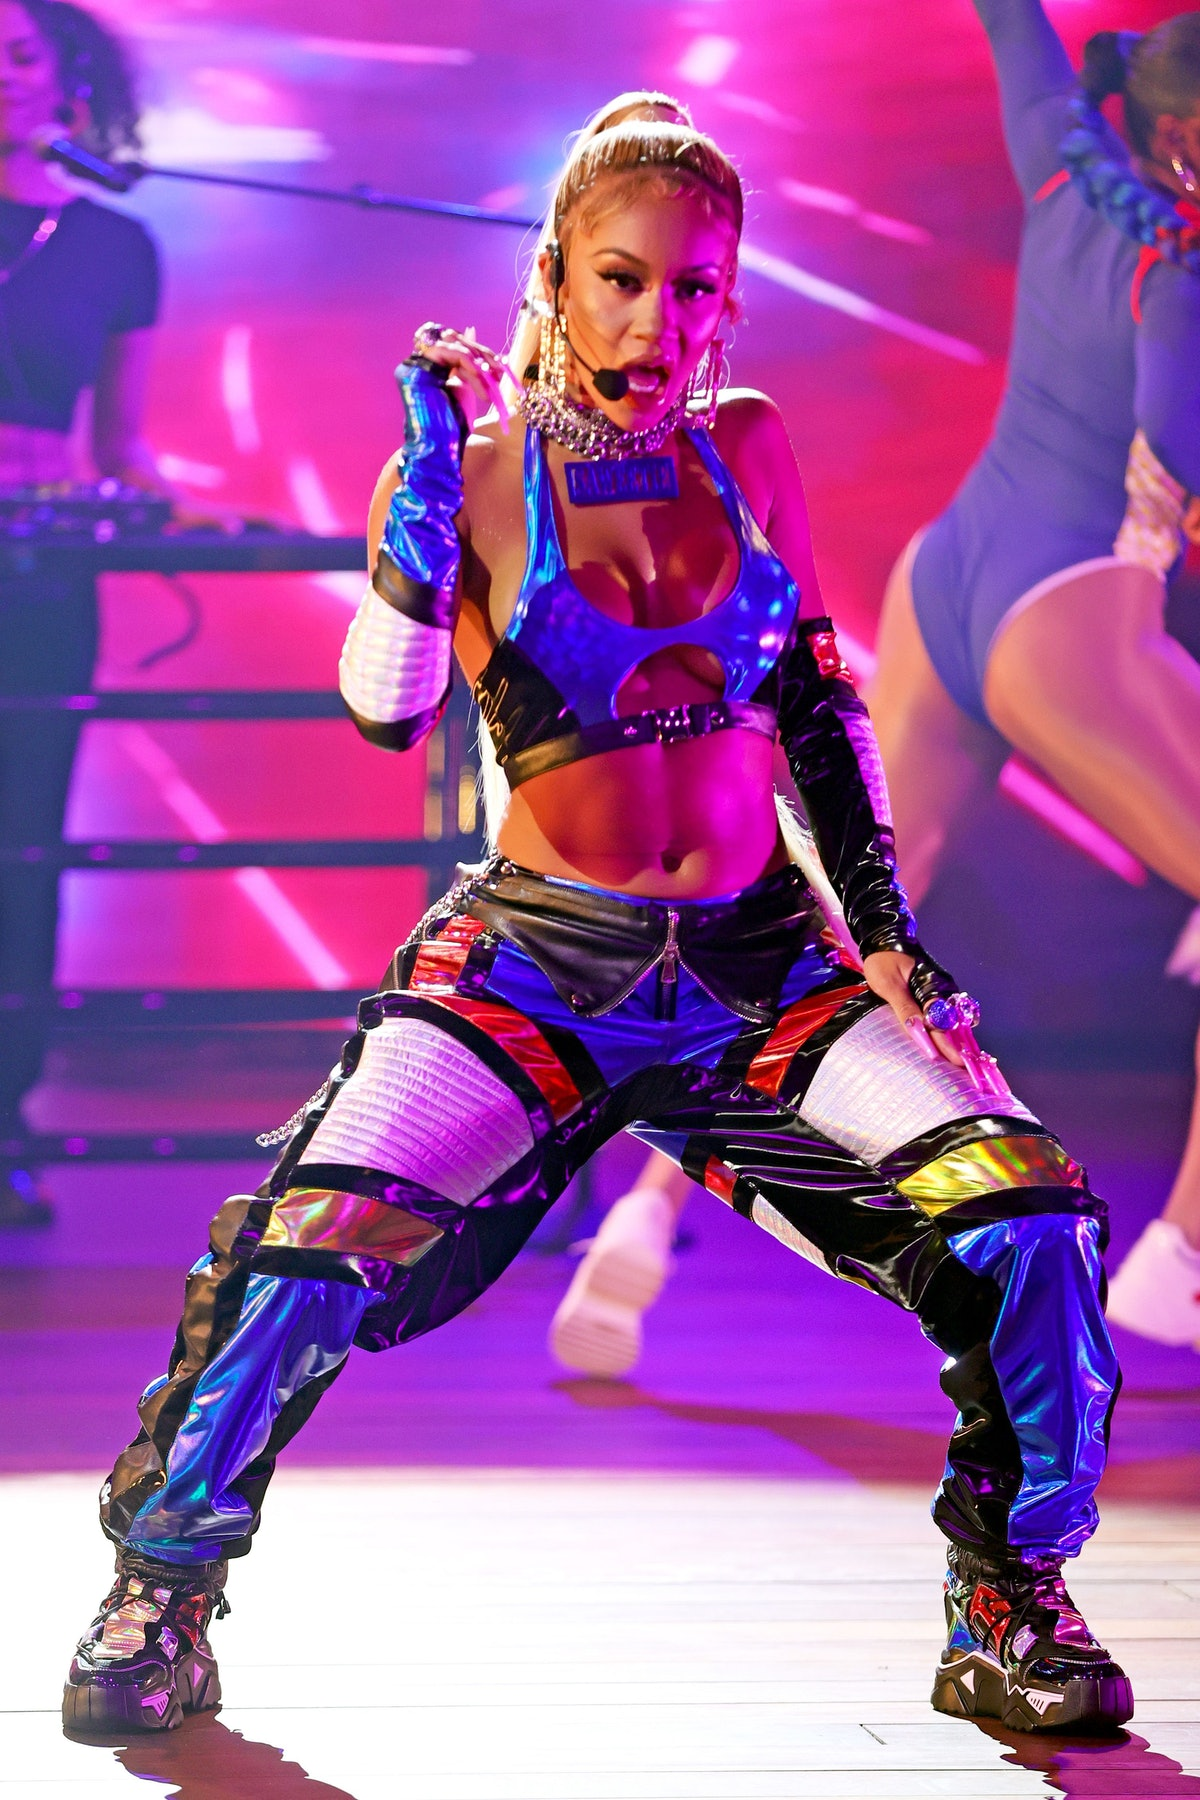 Saweetie, shown here on stage performing, is a total cancer.